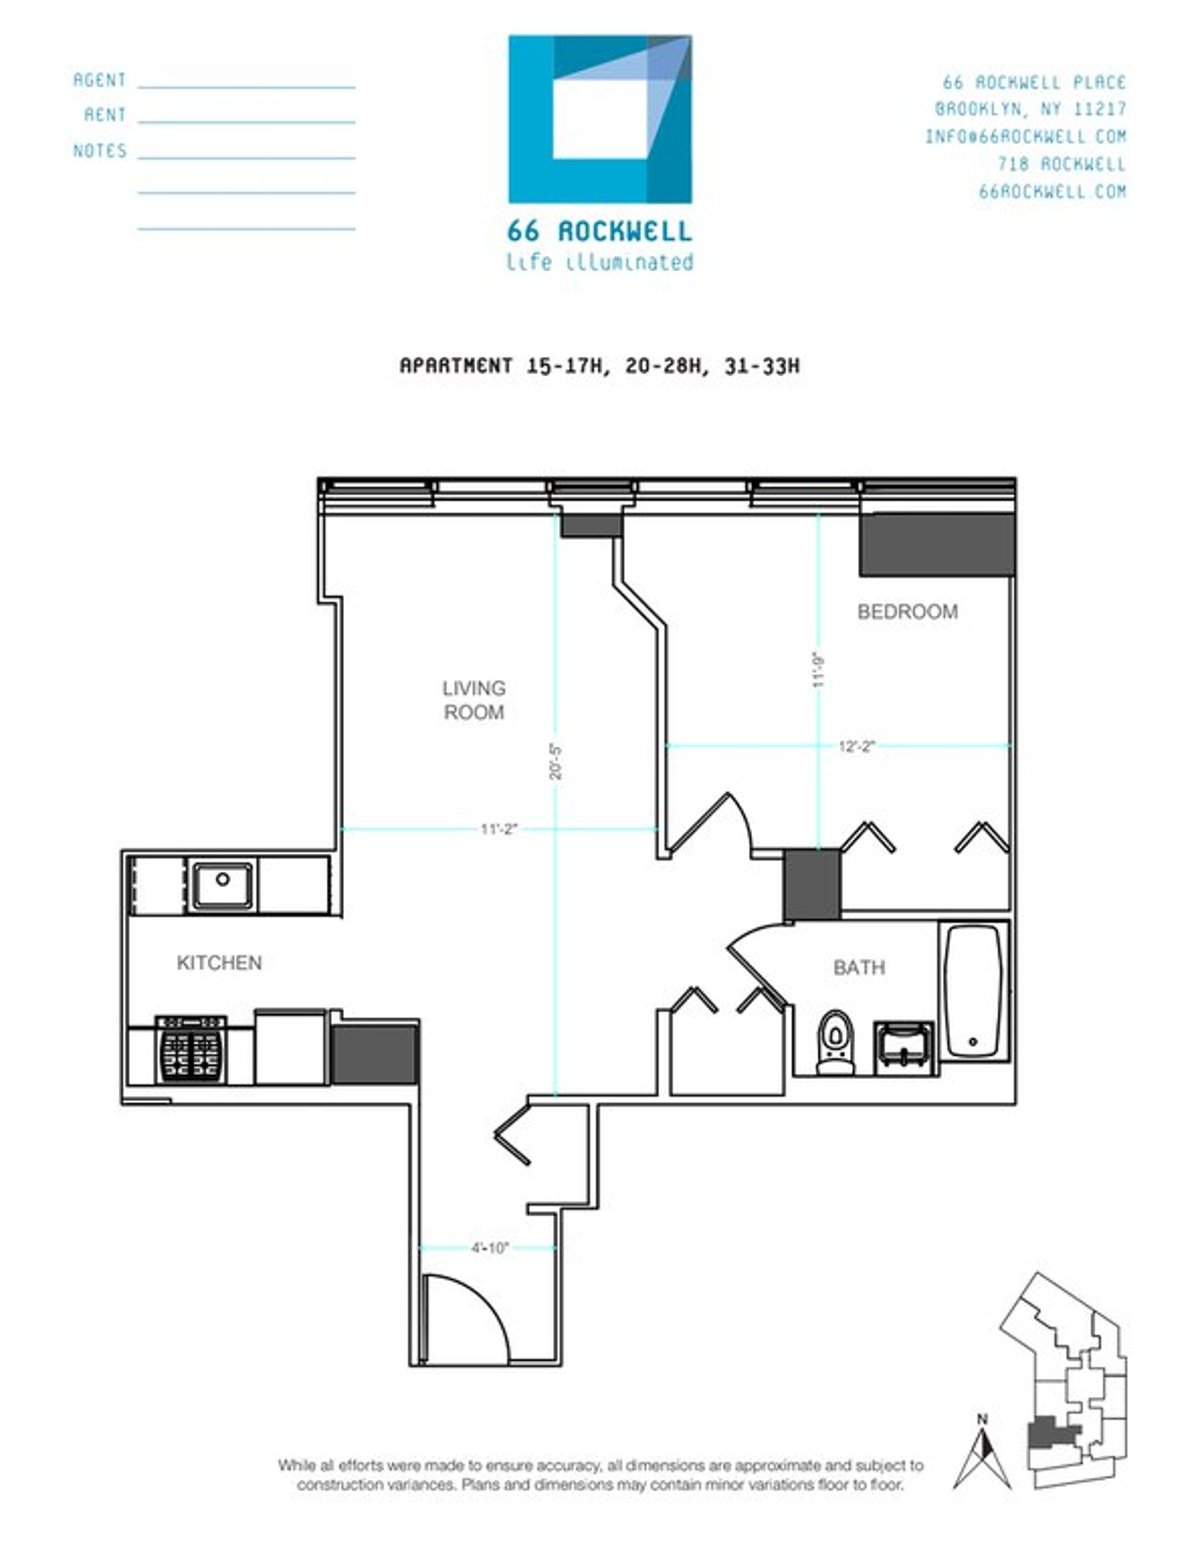 Image for Rockwell Place